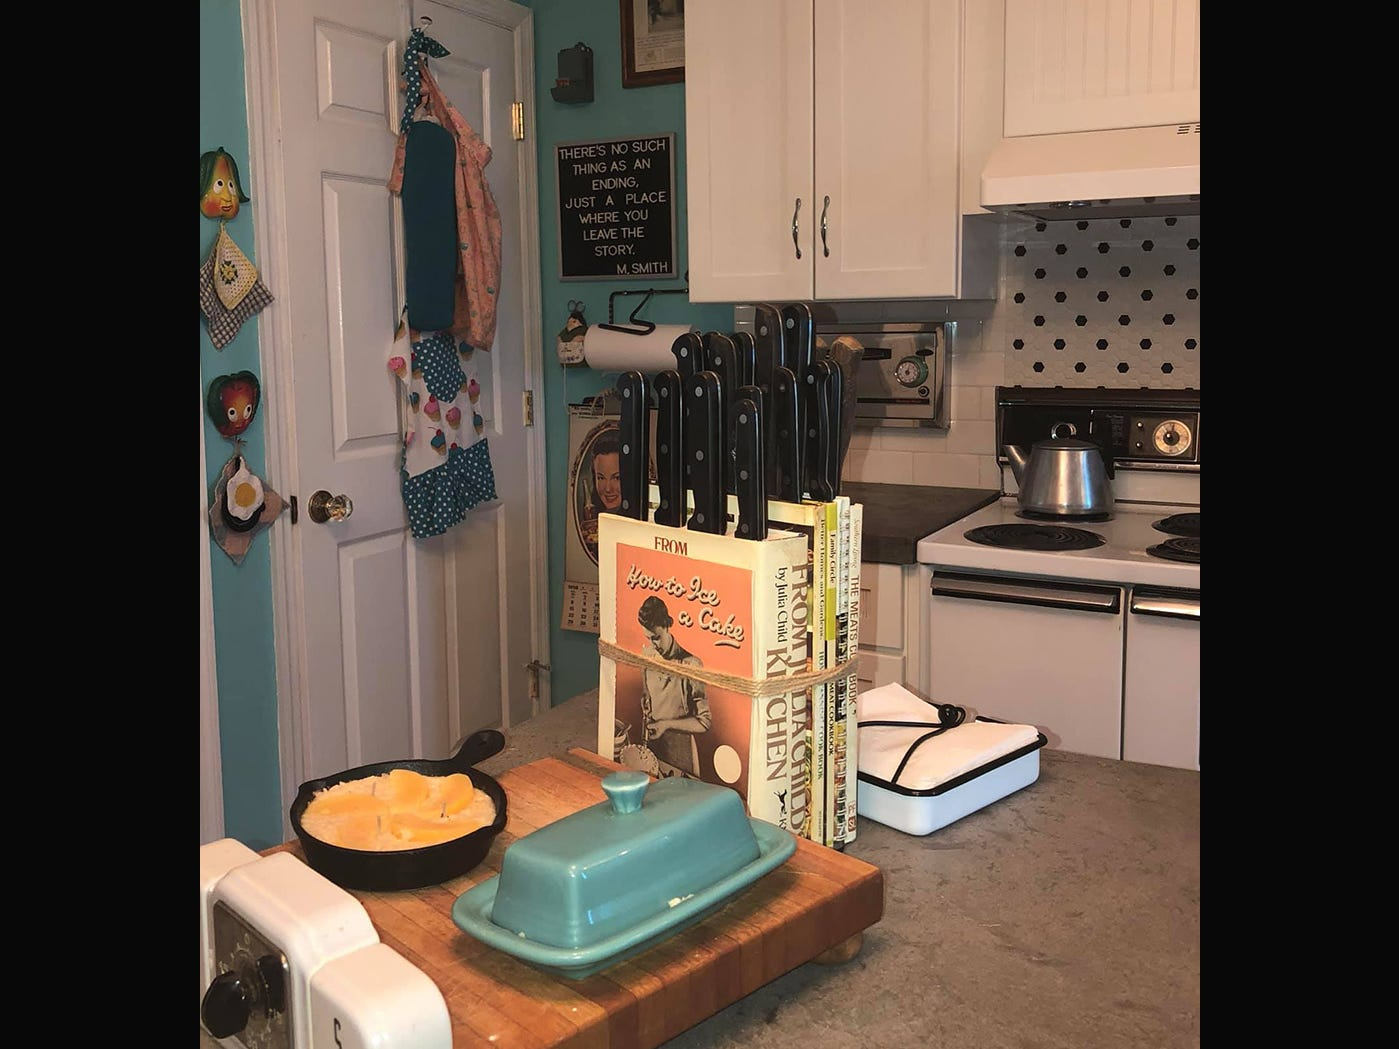 Kathleen Walter worked for years to gather items for her retro 1950s kitchen.